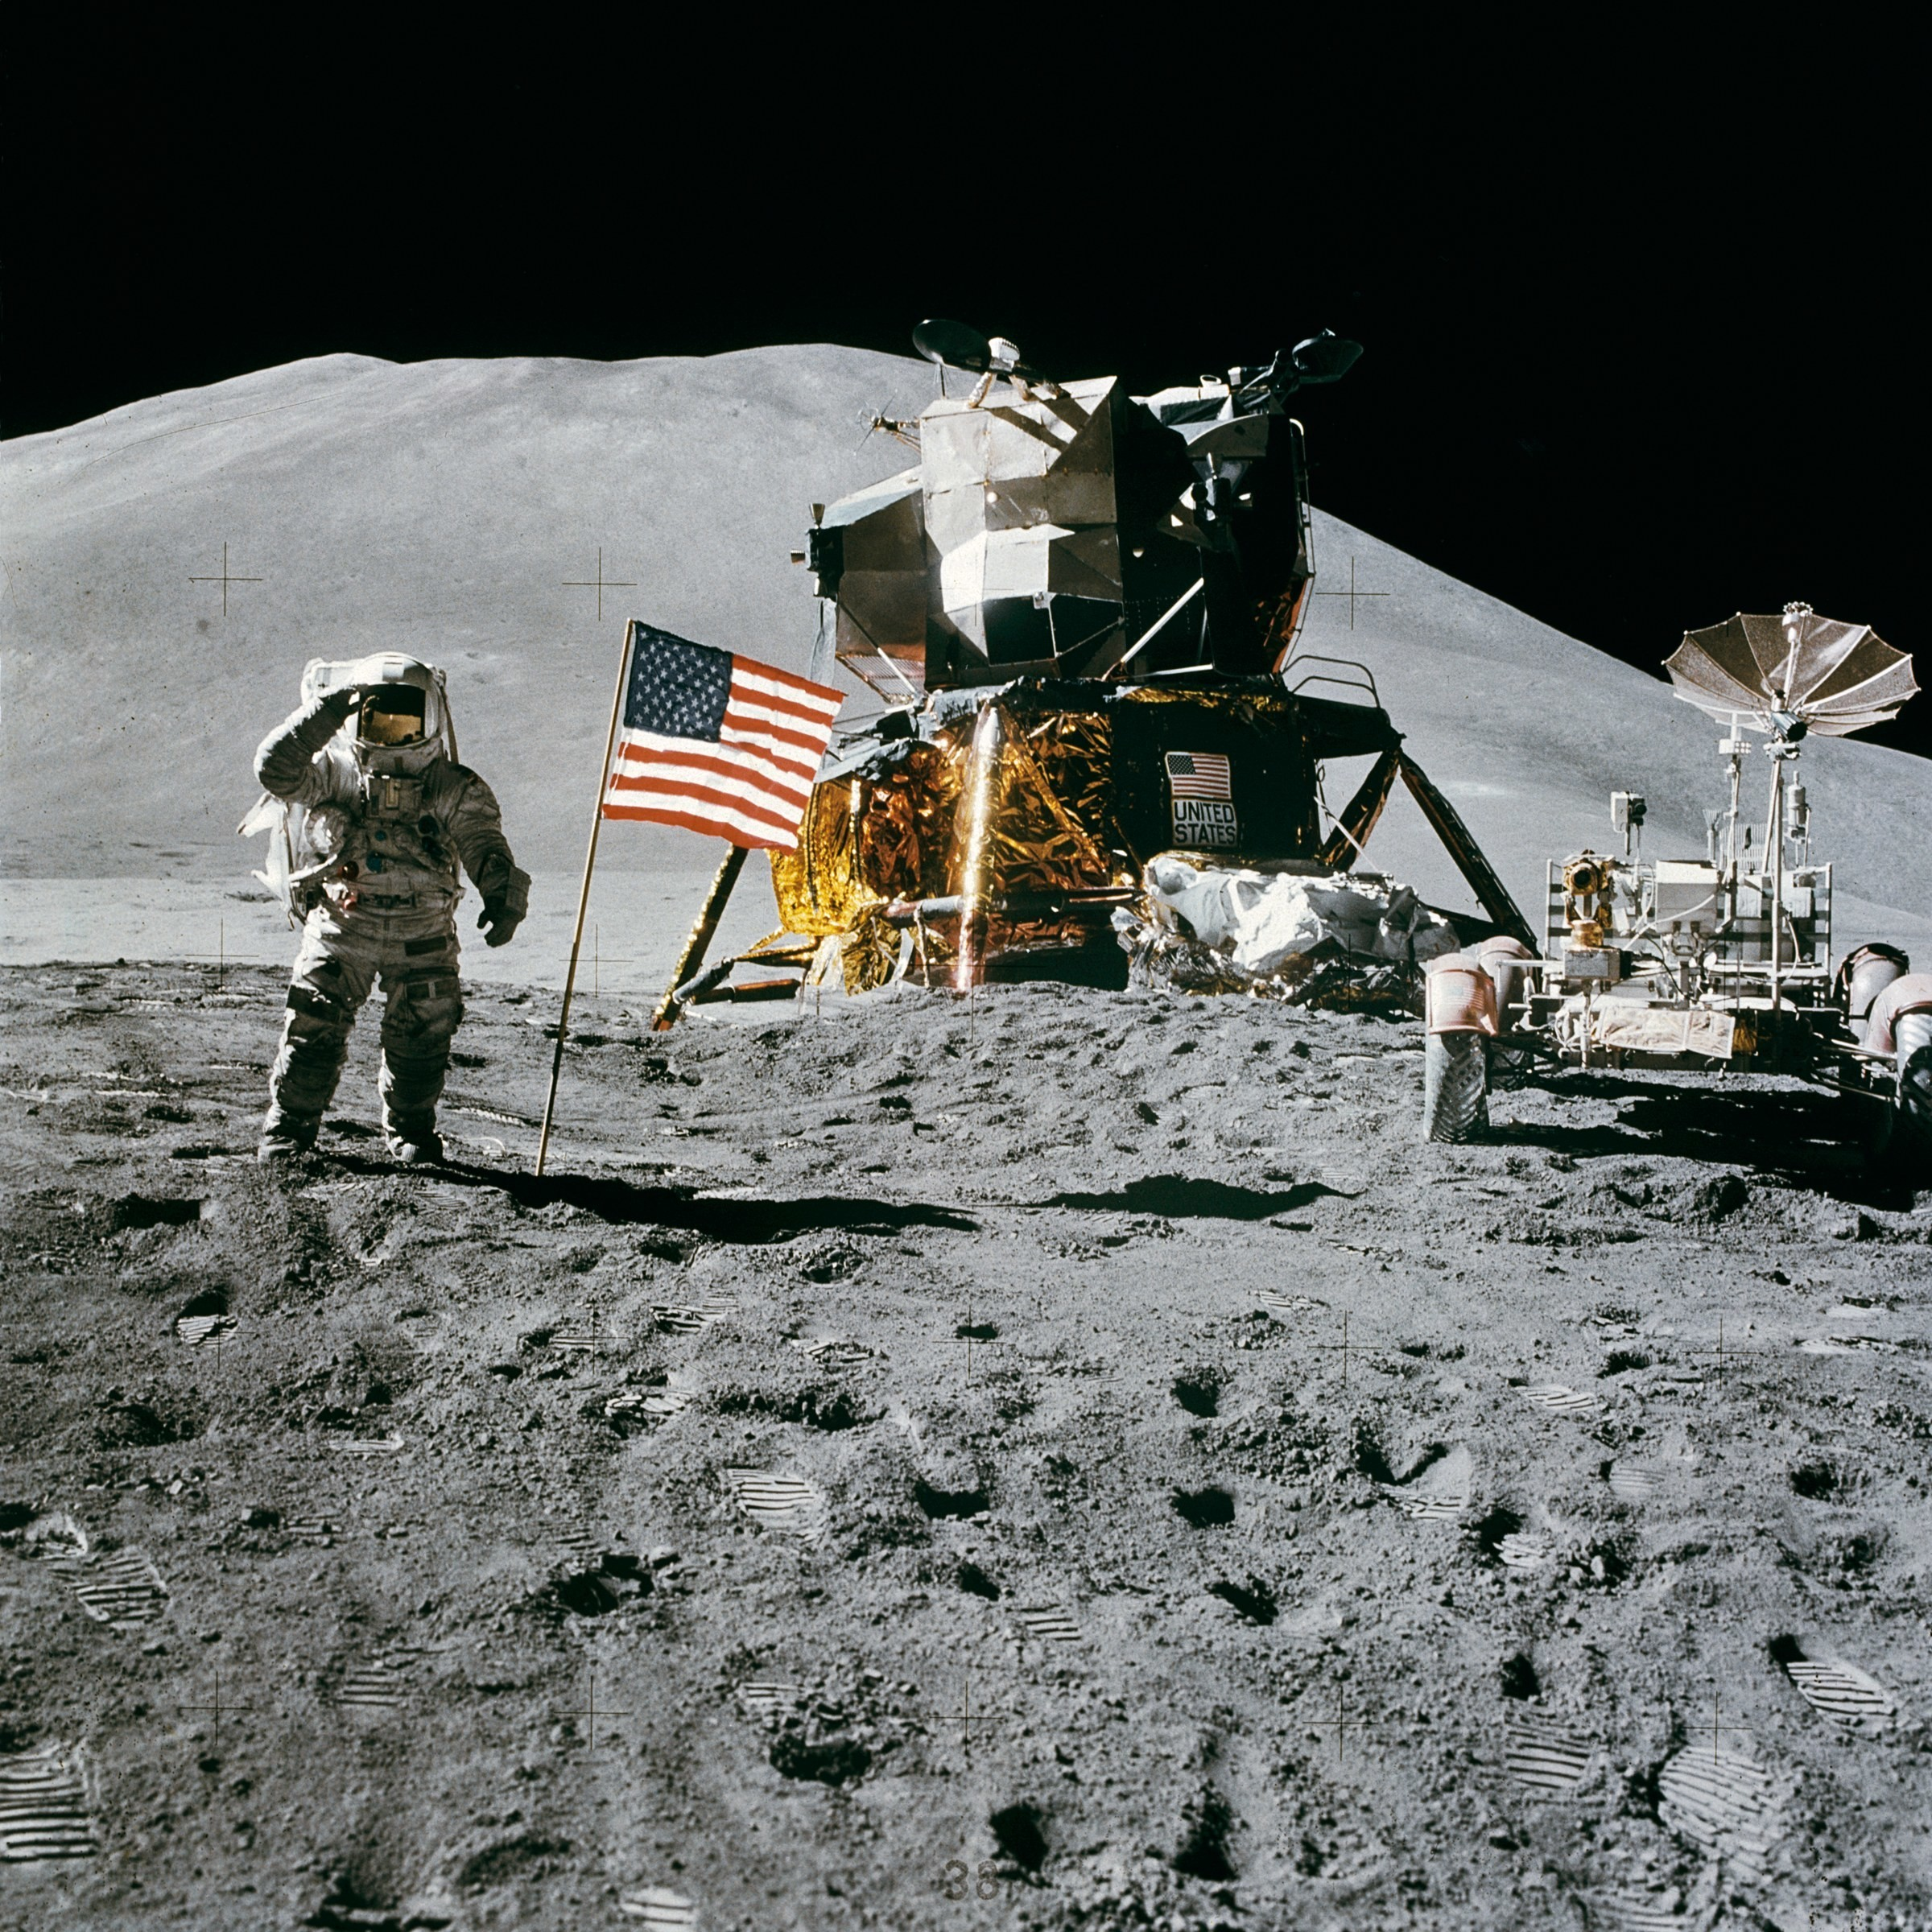 space moon lunar water science astronomy chemistry biology life outer planet mars exploration NASA national space agency orbit craft shuttle rocket space x